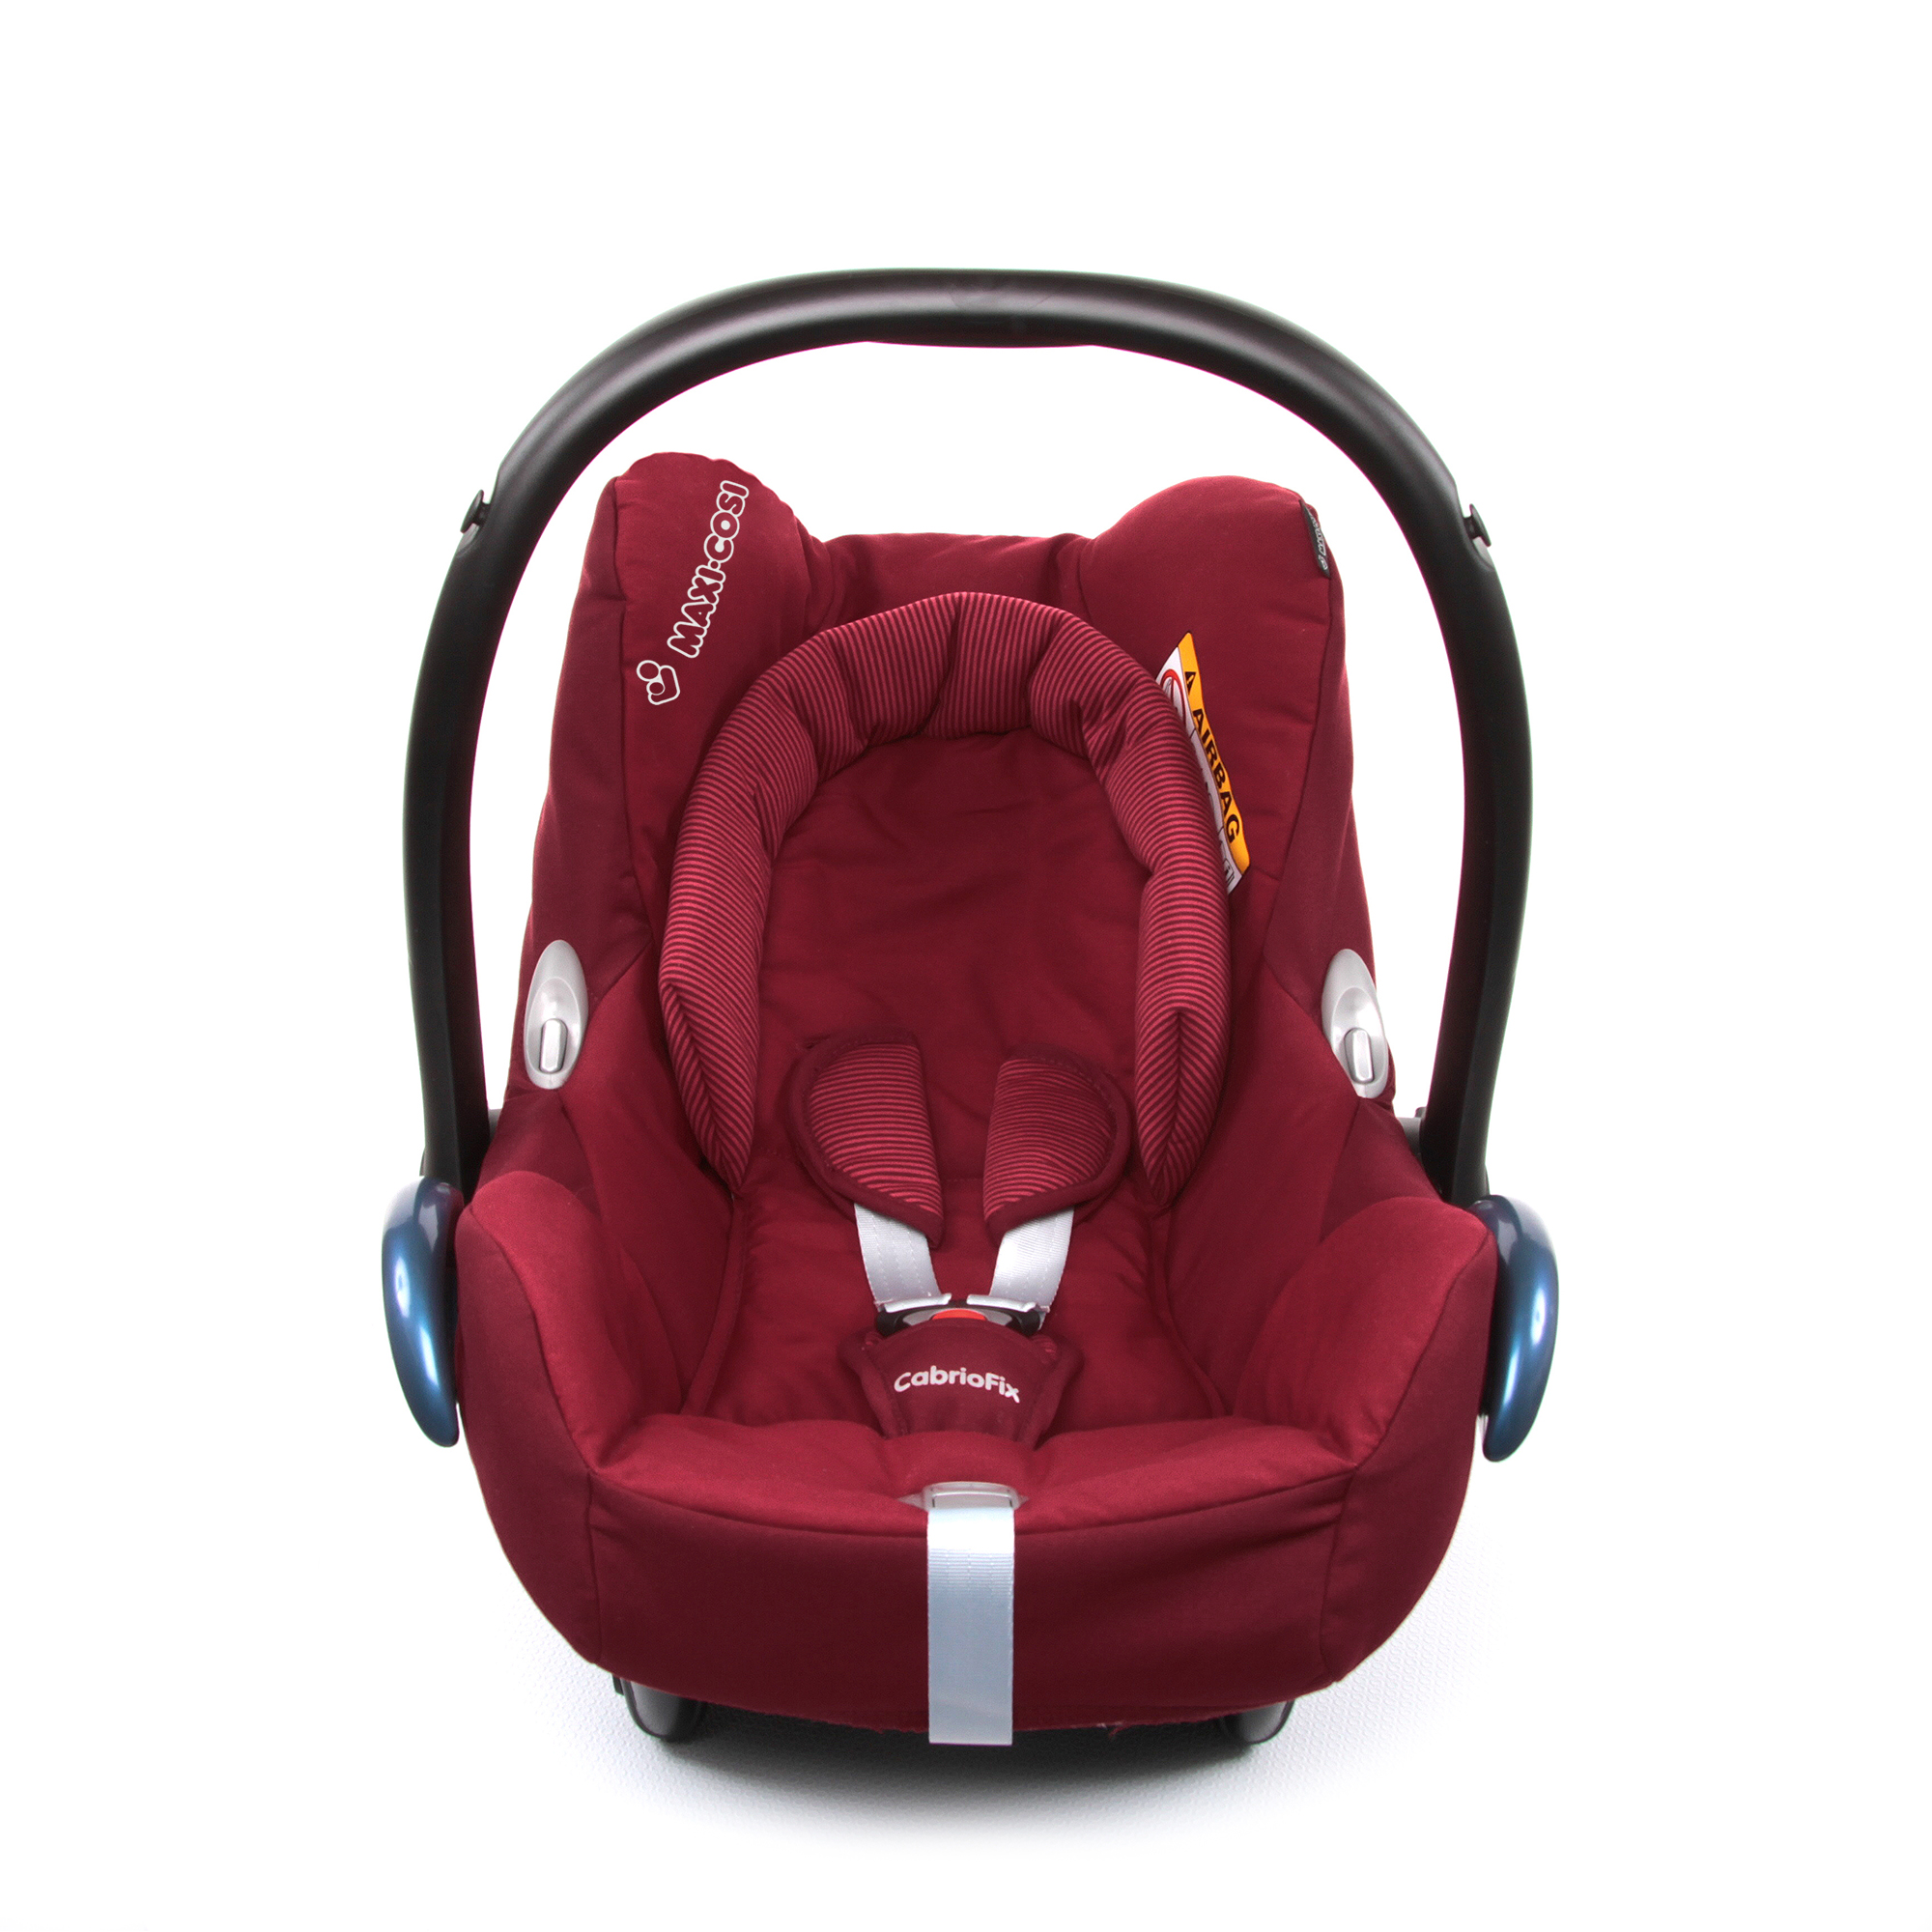 Maxi cosi infant carrier cabriofix buy at kidsroom car for Housse maxi cosi cabriofix